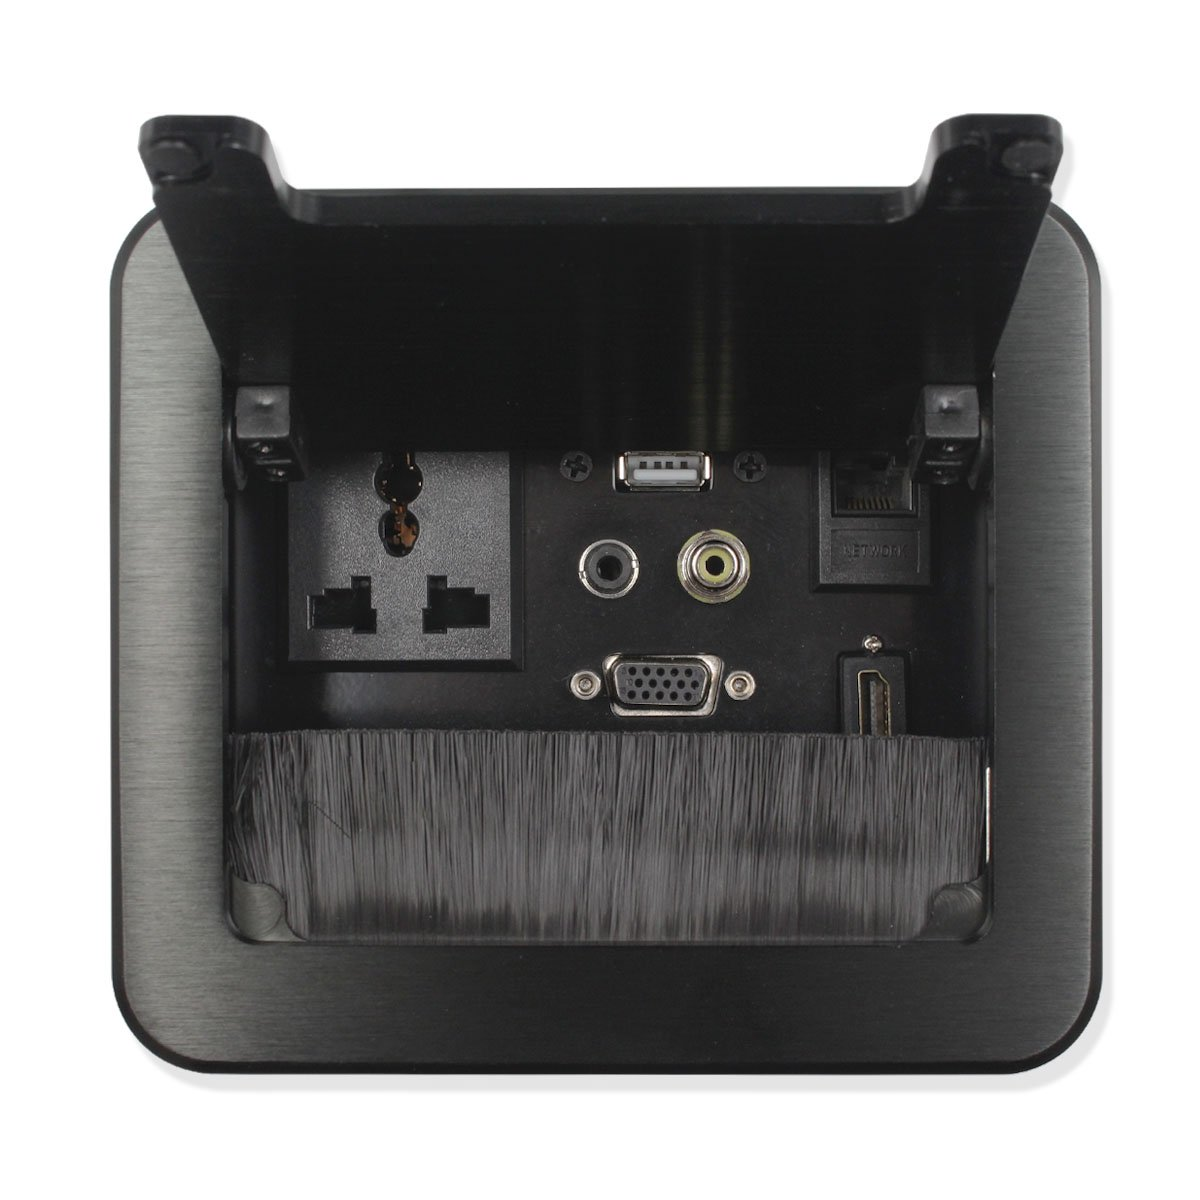 Non Soldering Multi-Function Table Socket Tabletop Brush Information Cable Box with Cover for Office or Meeting Room Table